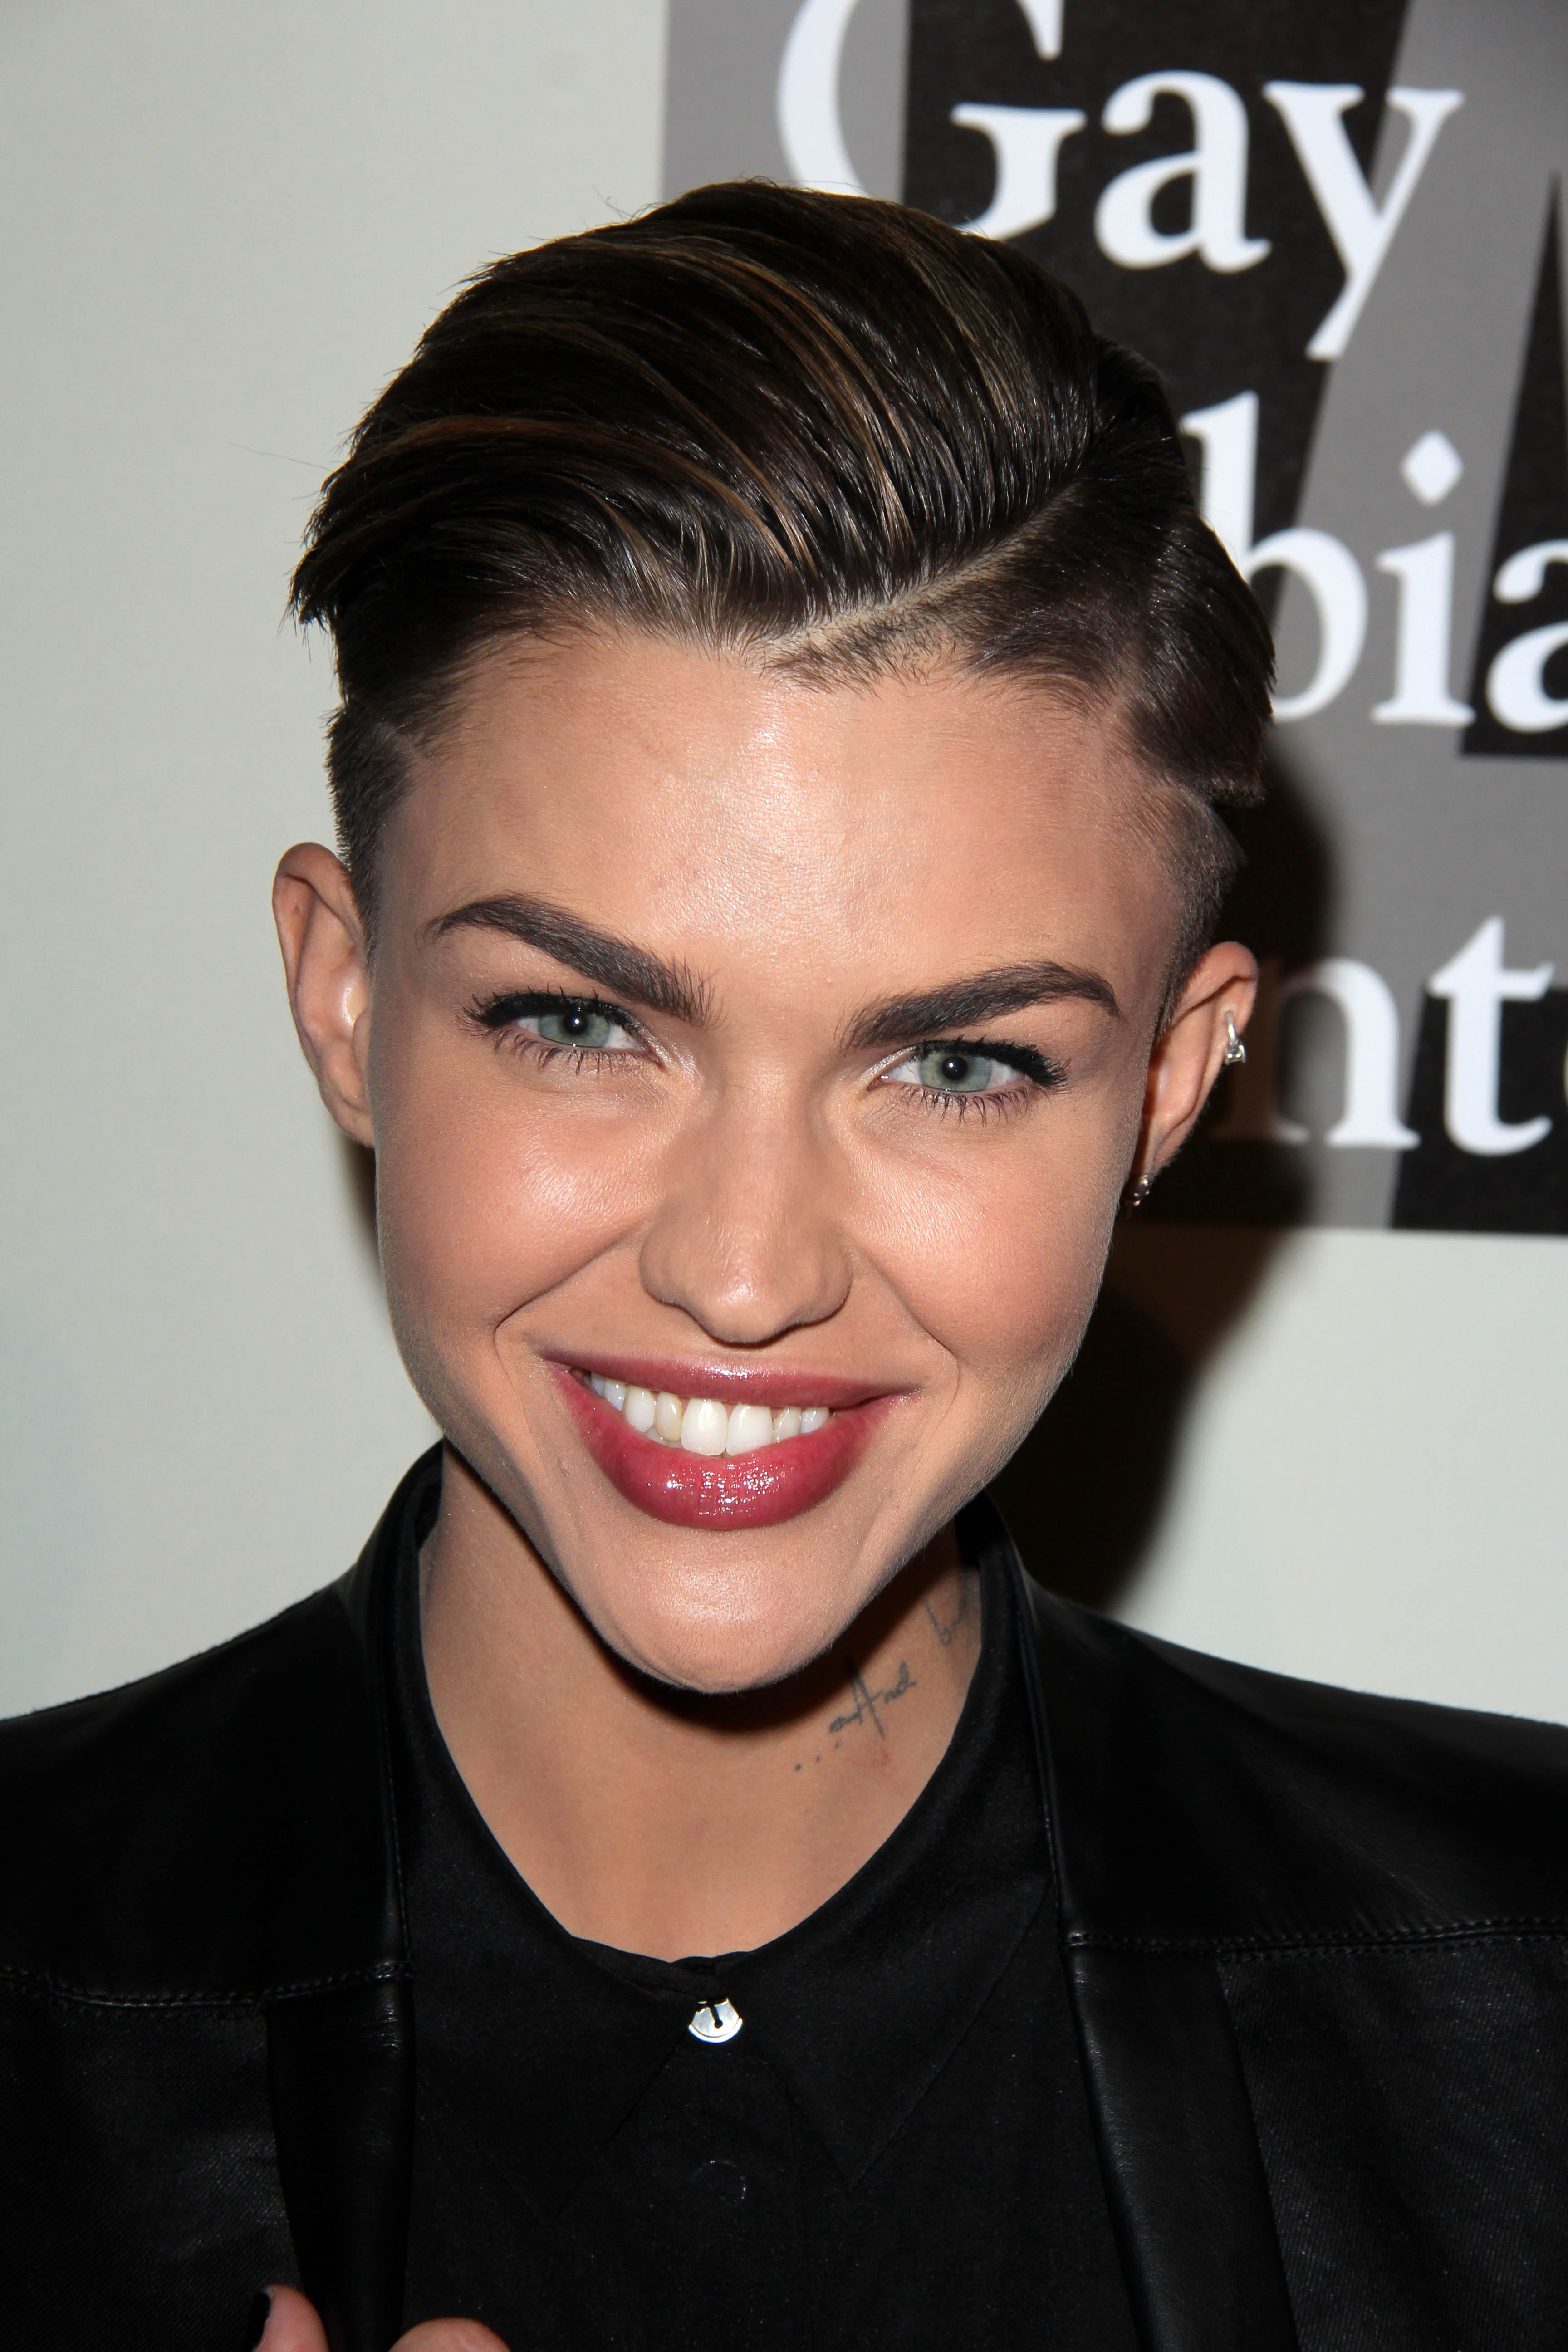 Ruby Rose's Sleek Faux Hawk with Lines